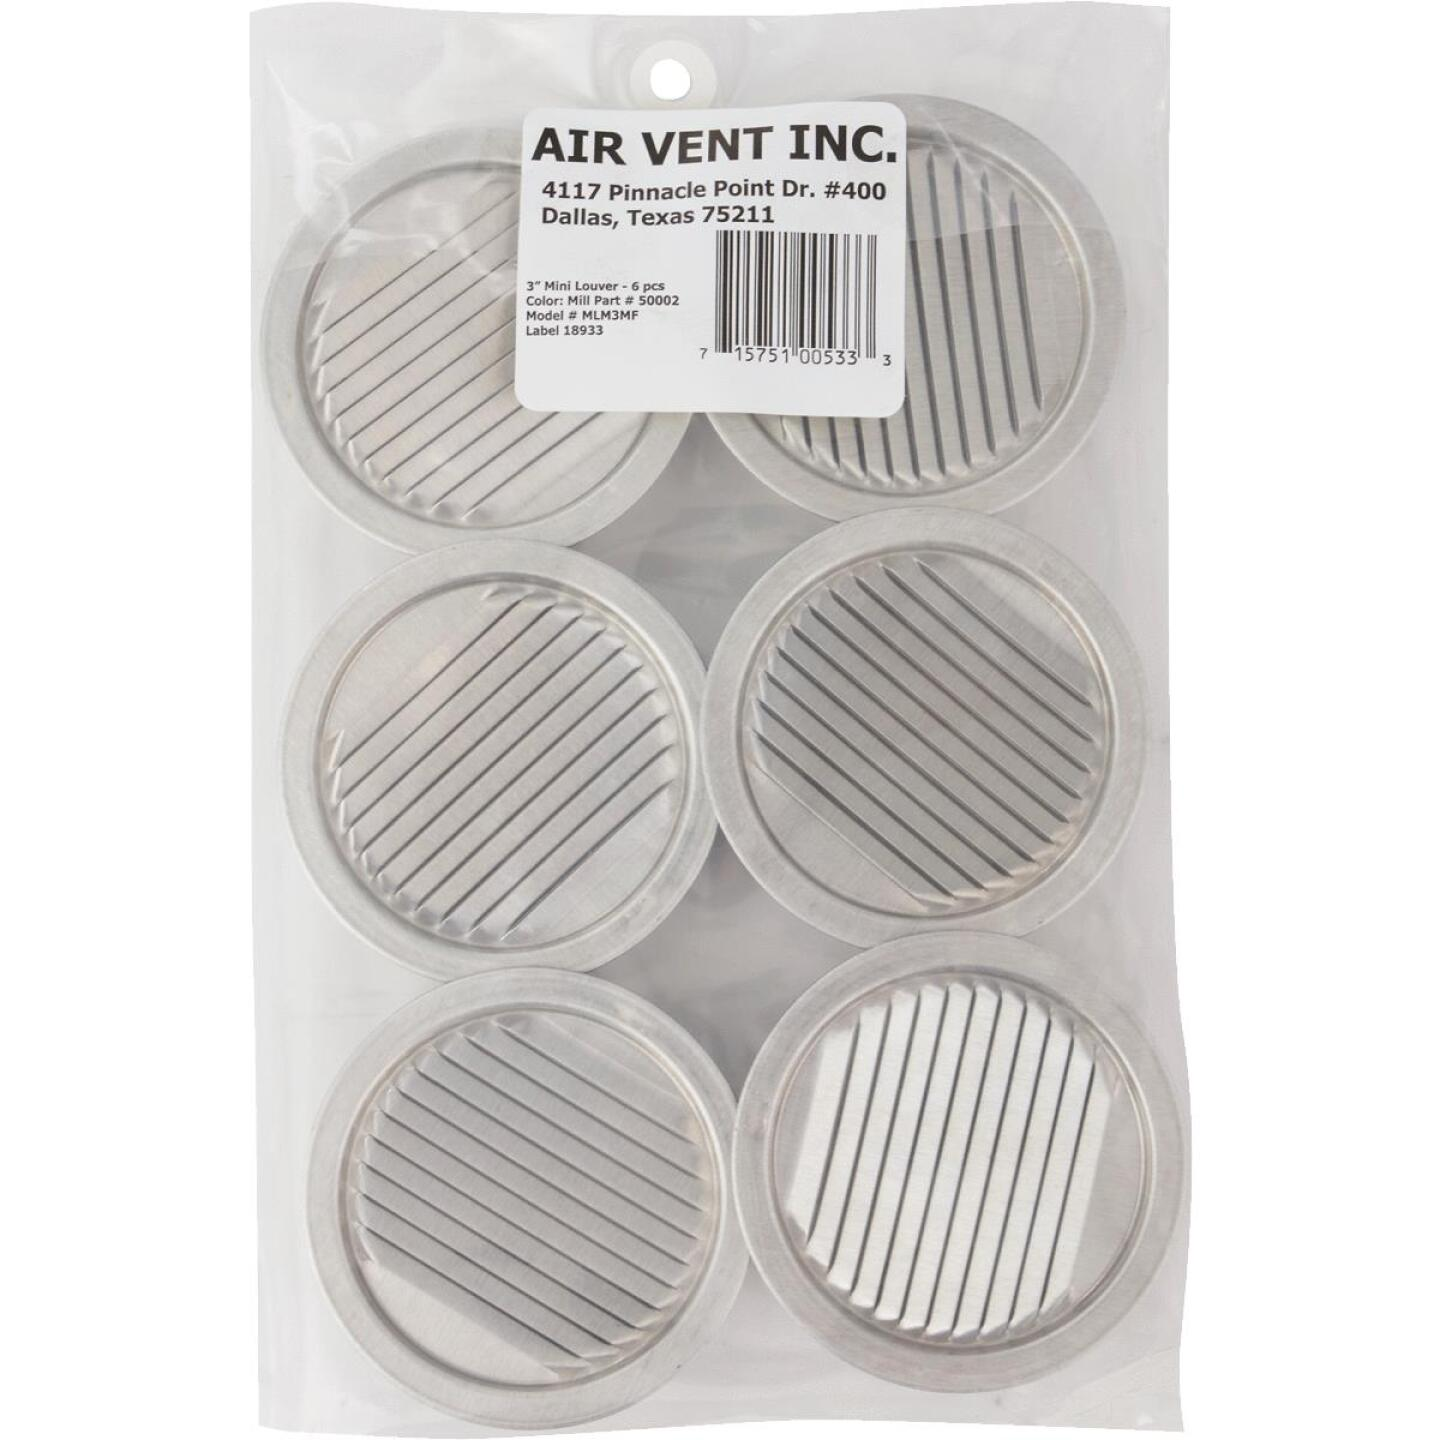 Air Vent 3 In. Aluminum Mini Louver (6 Count) Image 3